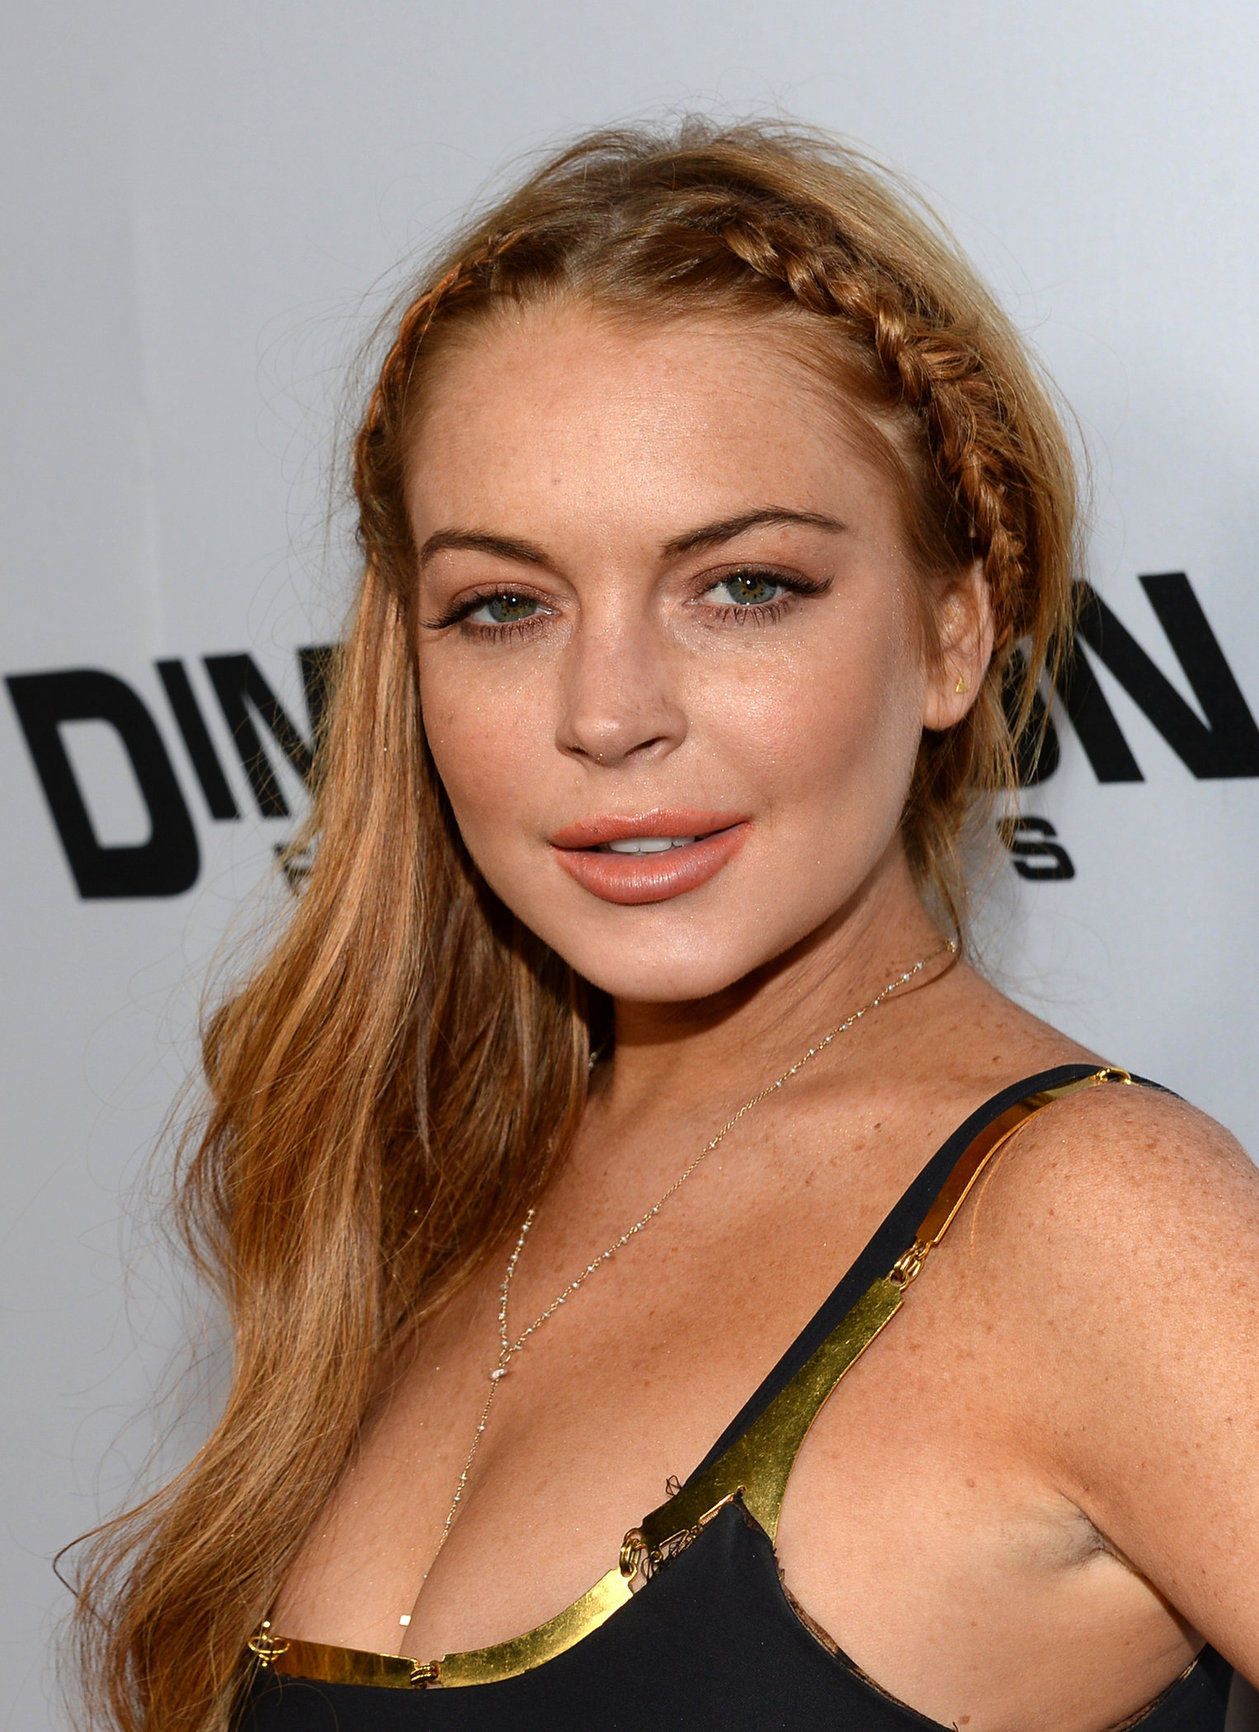 Lindsay Lohan Scary Movie 5 premiere in Hollywood on April ... Lindsay Lohan